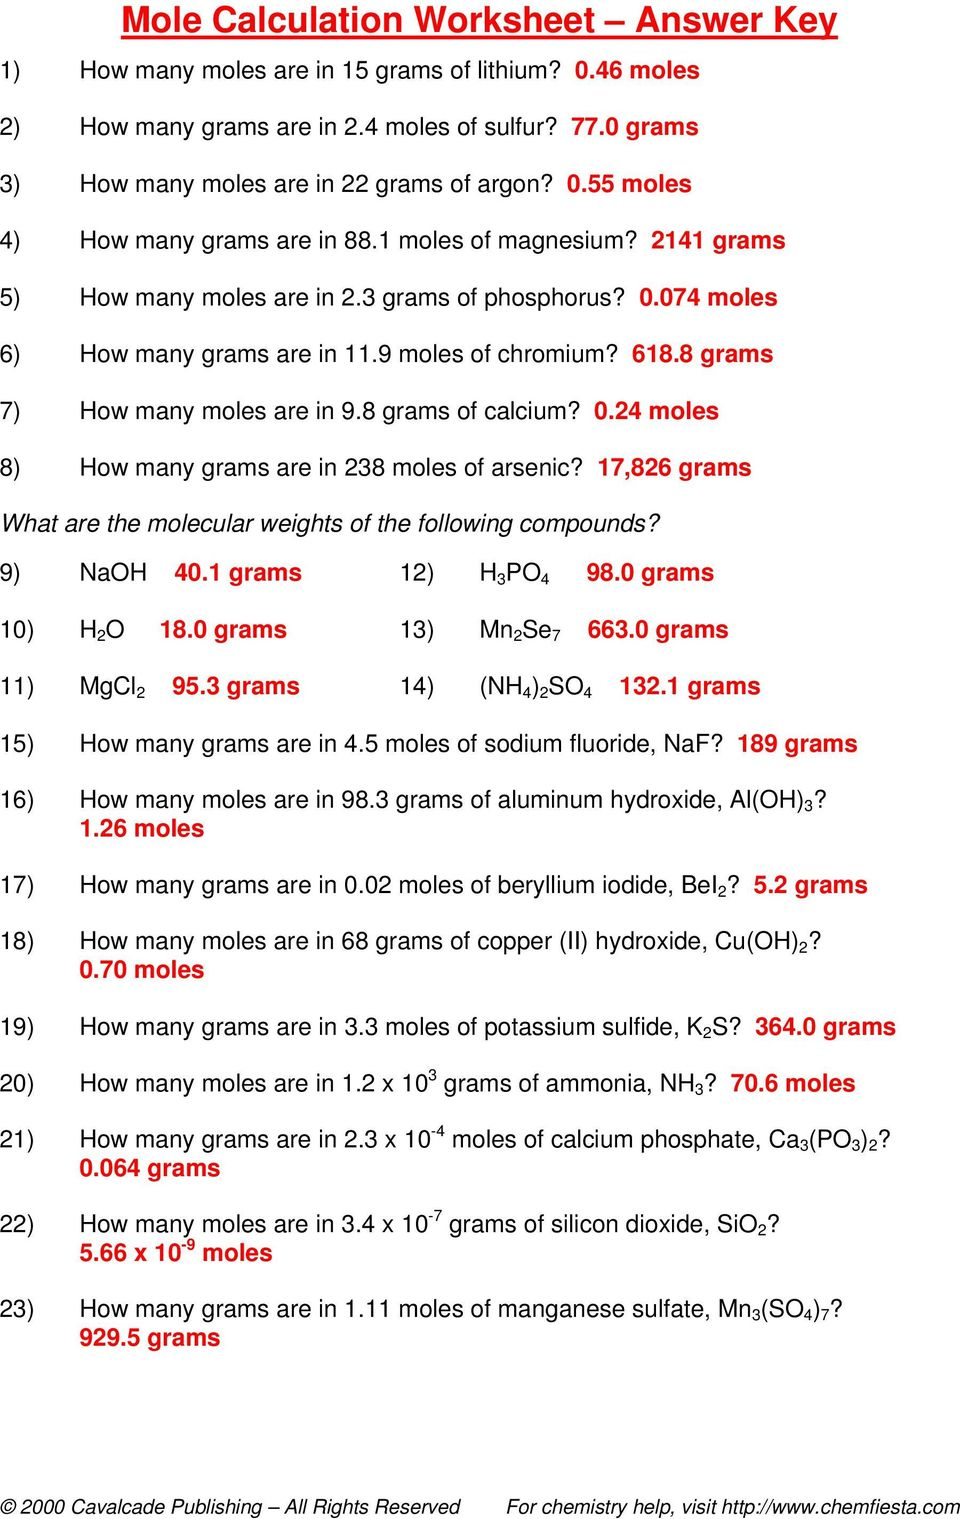 Worksheet Moles Molecules And Grams Worksheet molecules and grams worksheet answer key 8 of calcium 0 24 moles how many are in 238 moles